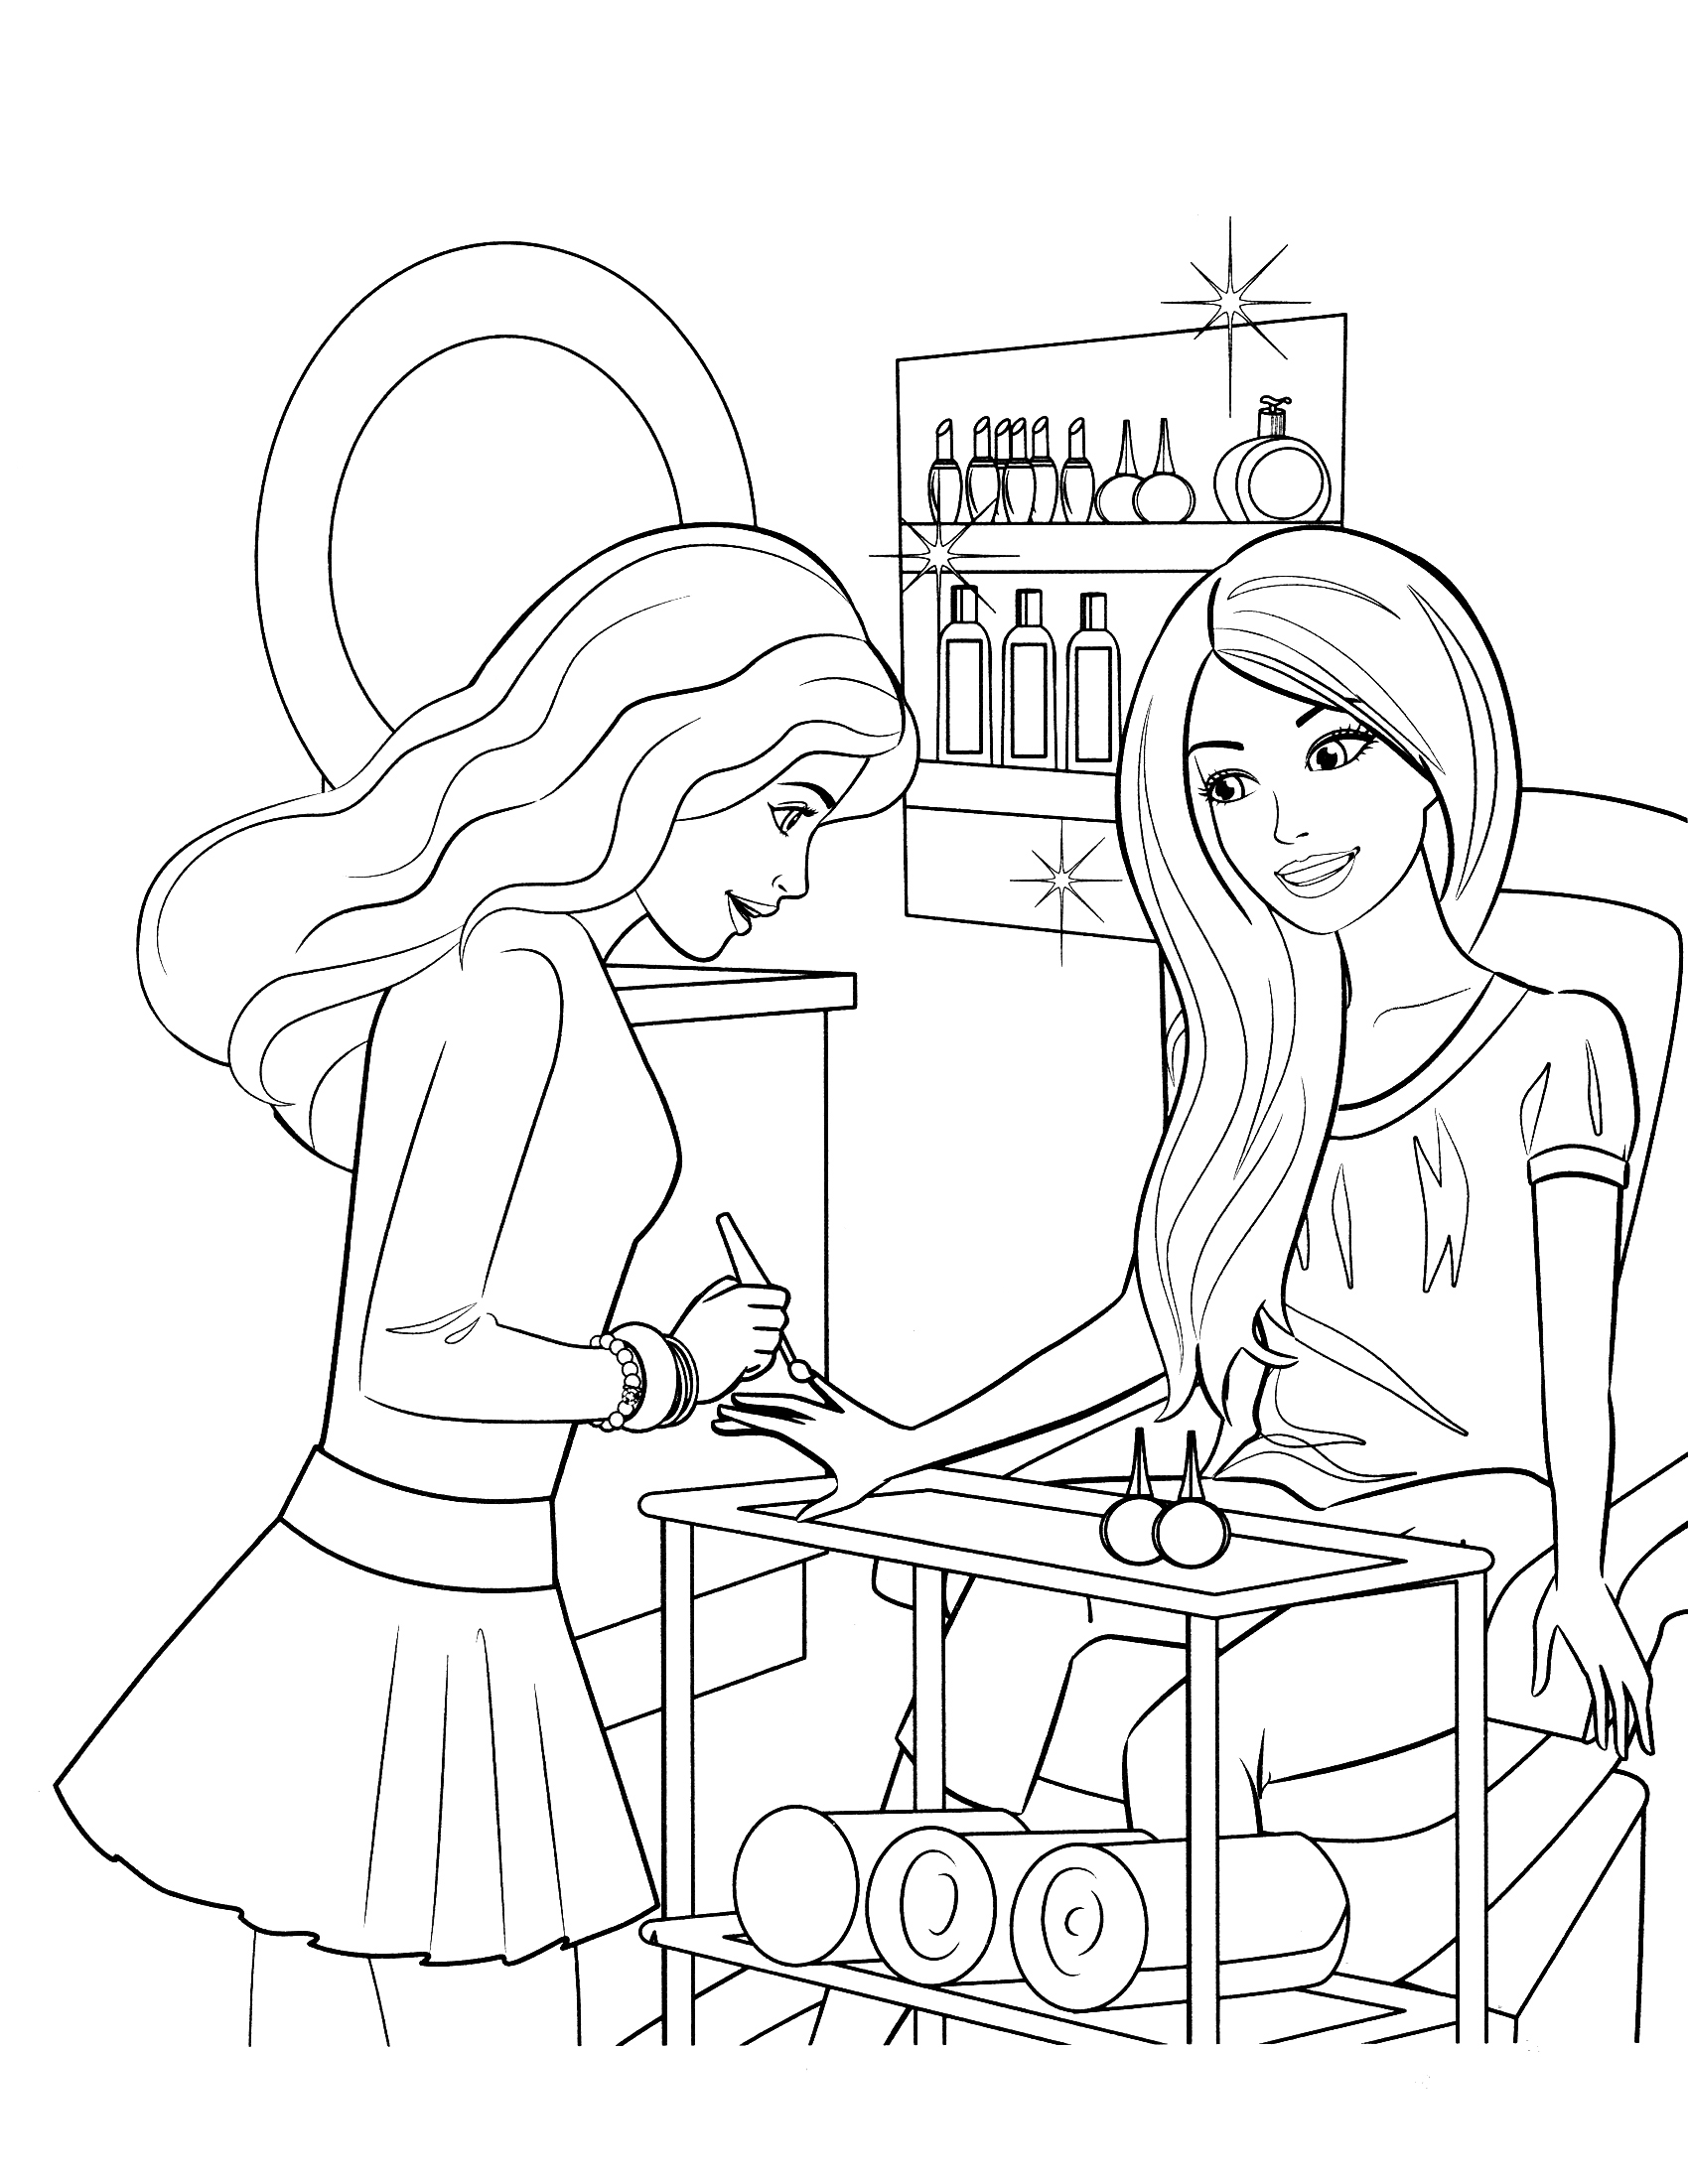 Drawn barbie color Barbie Style Summer summer Coloring